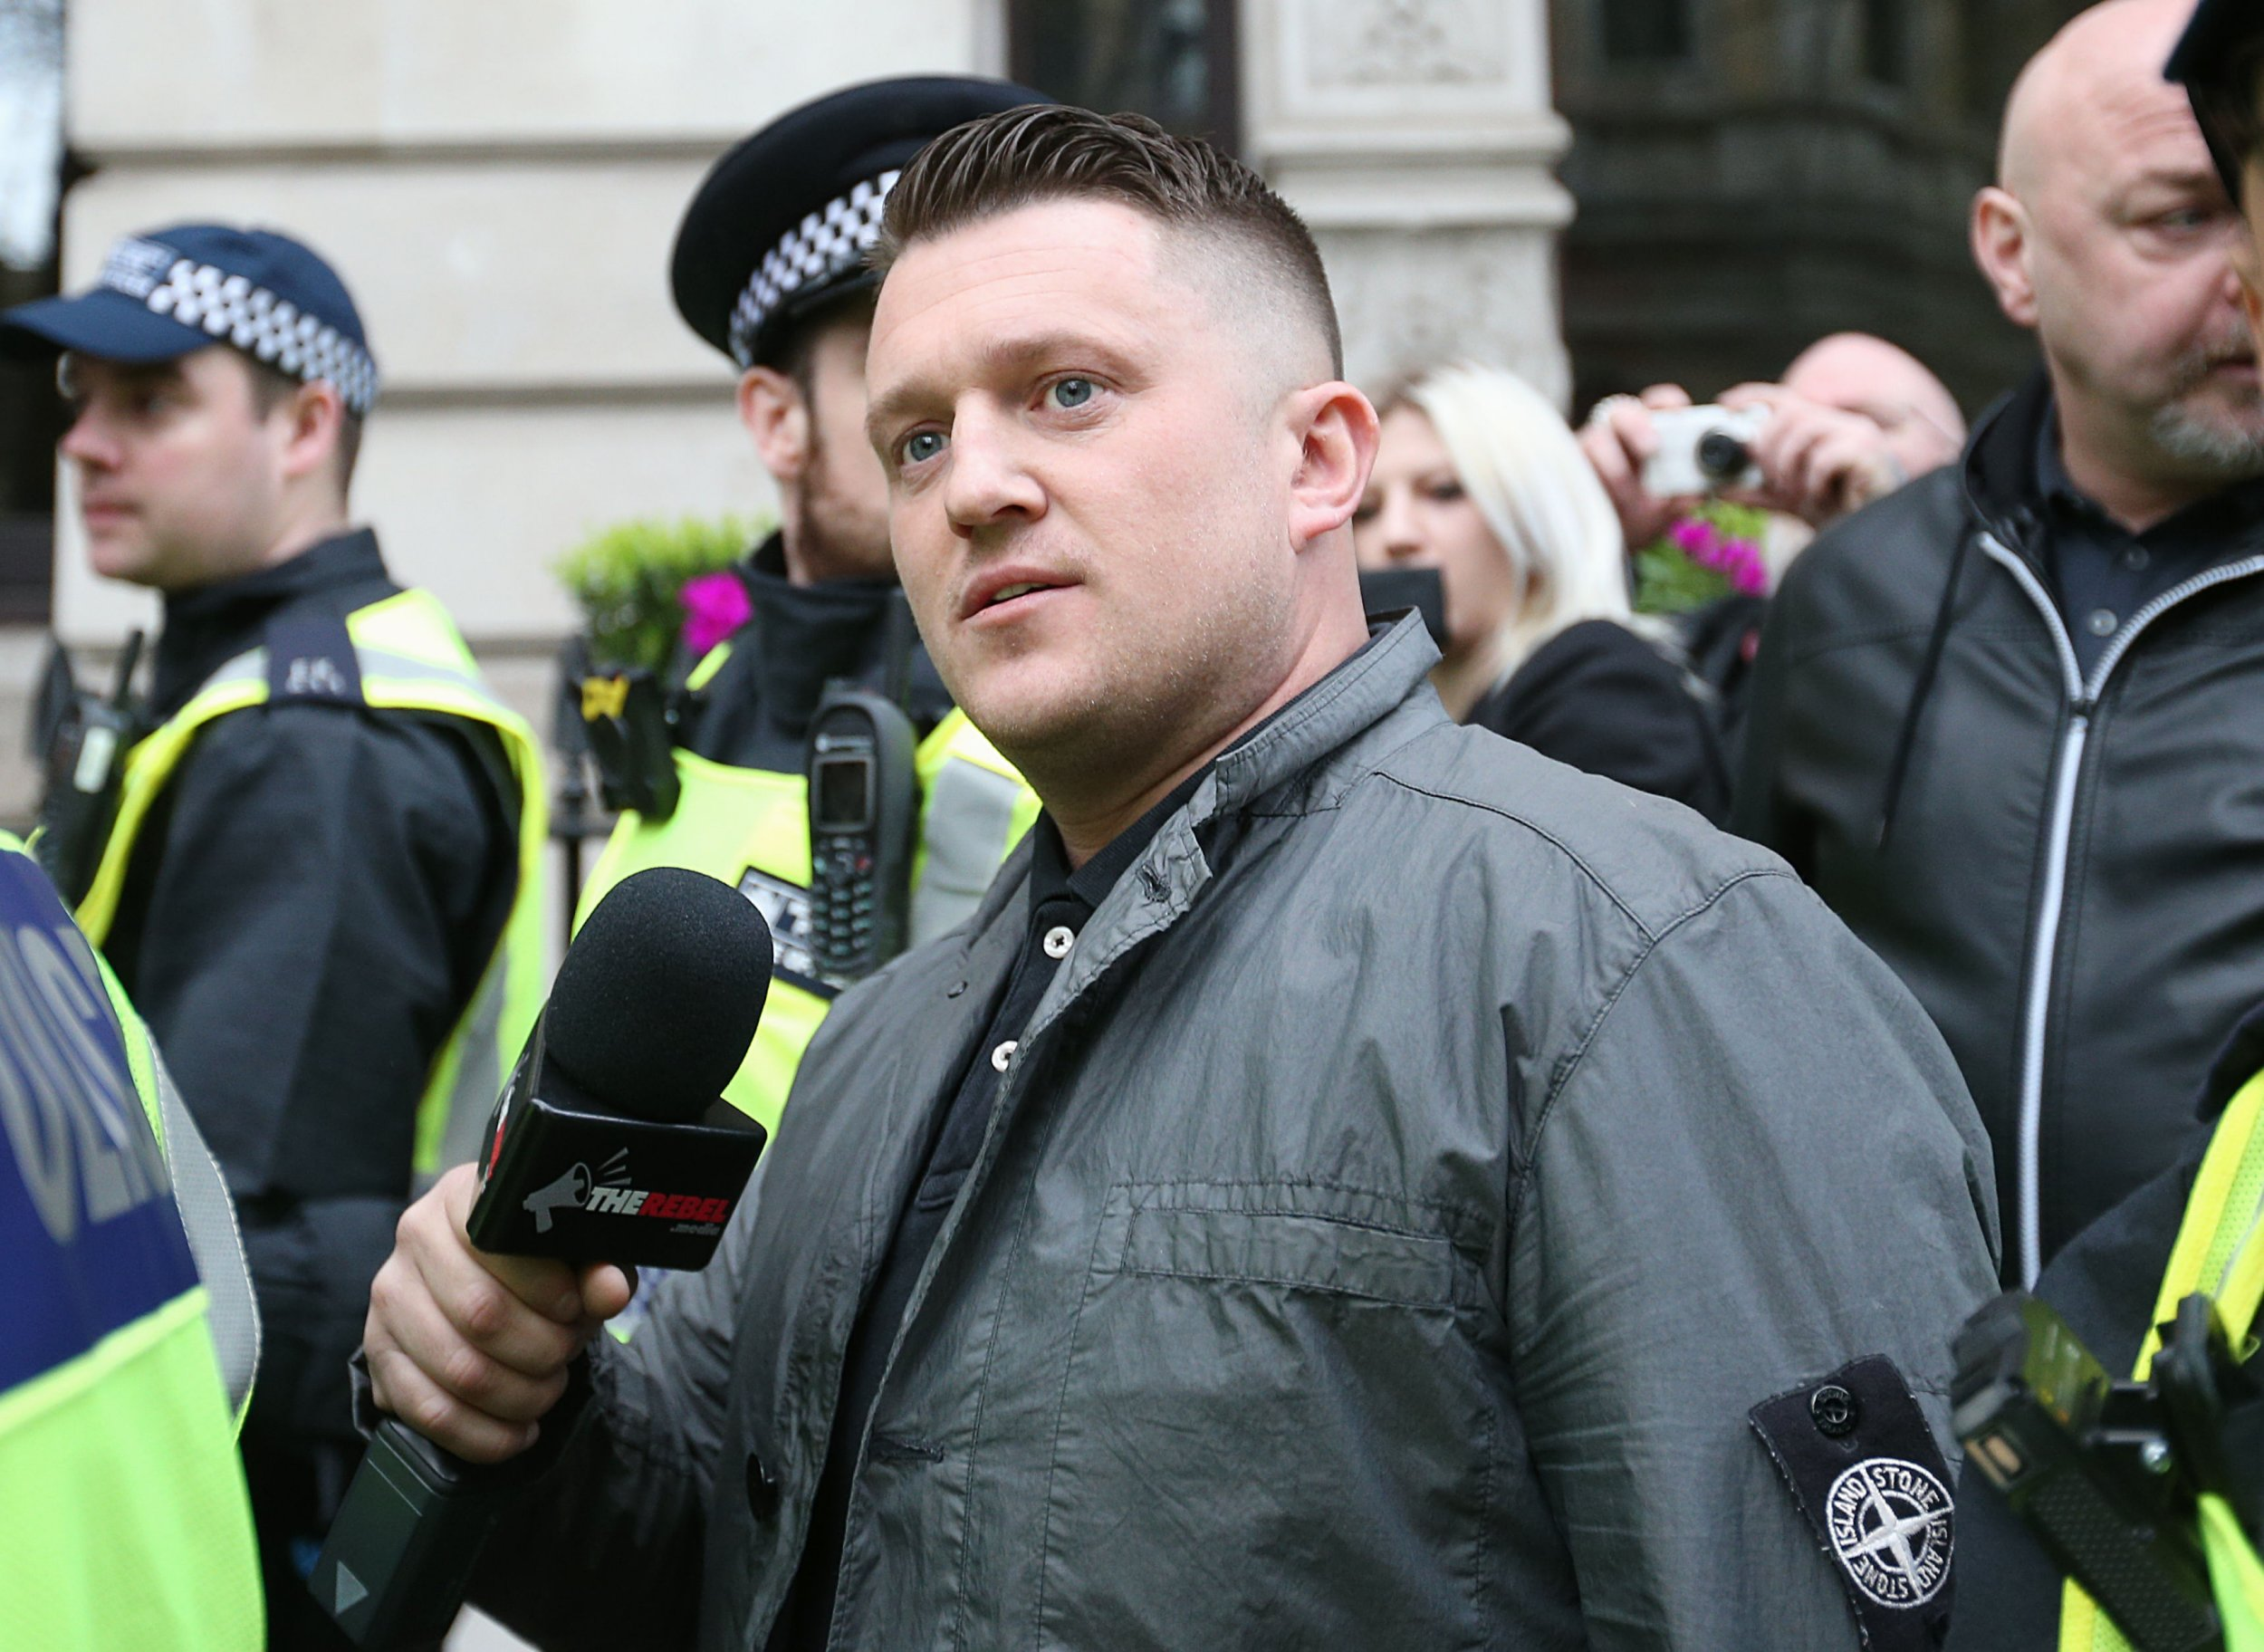 Former EDL leader Tommy Robinson arrested 'for breaking court rules'